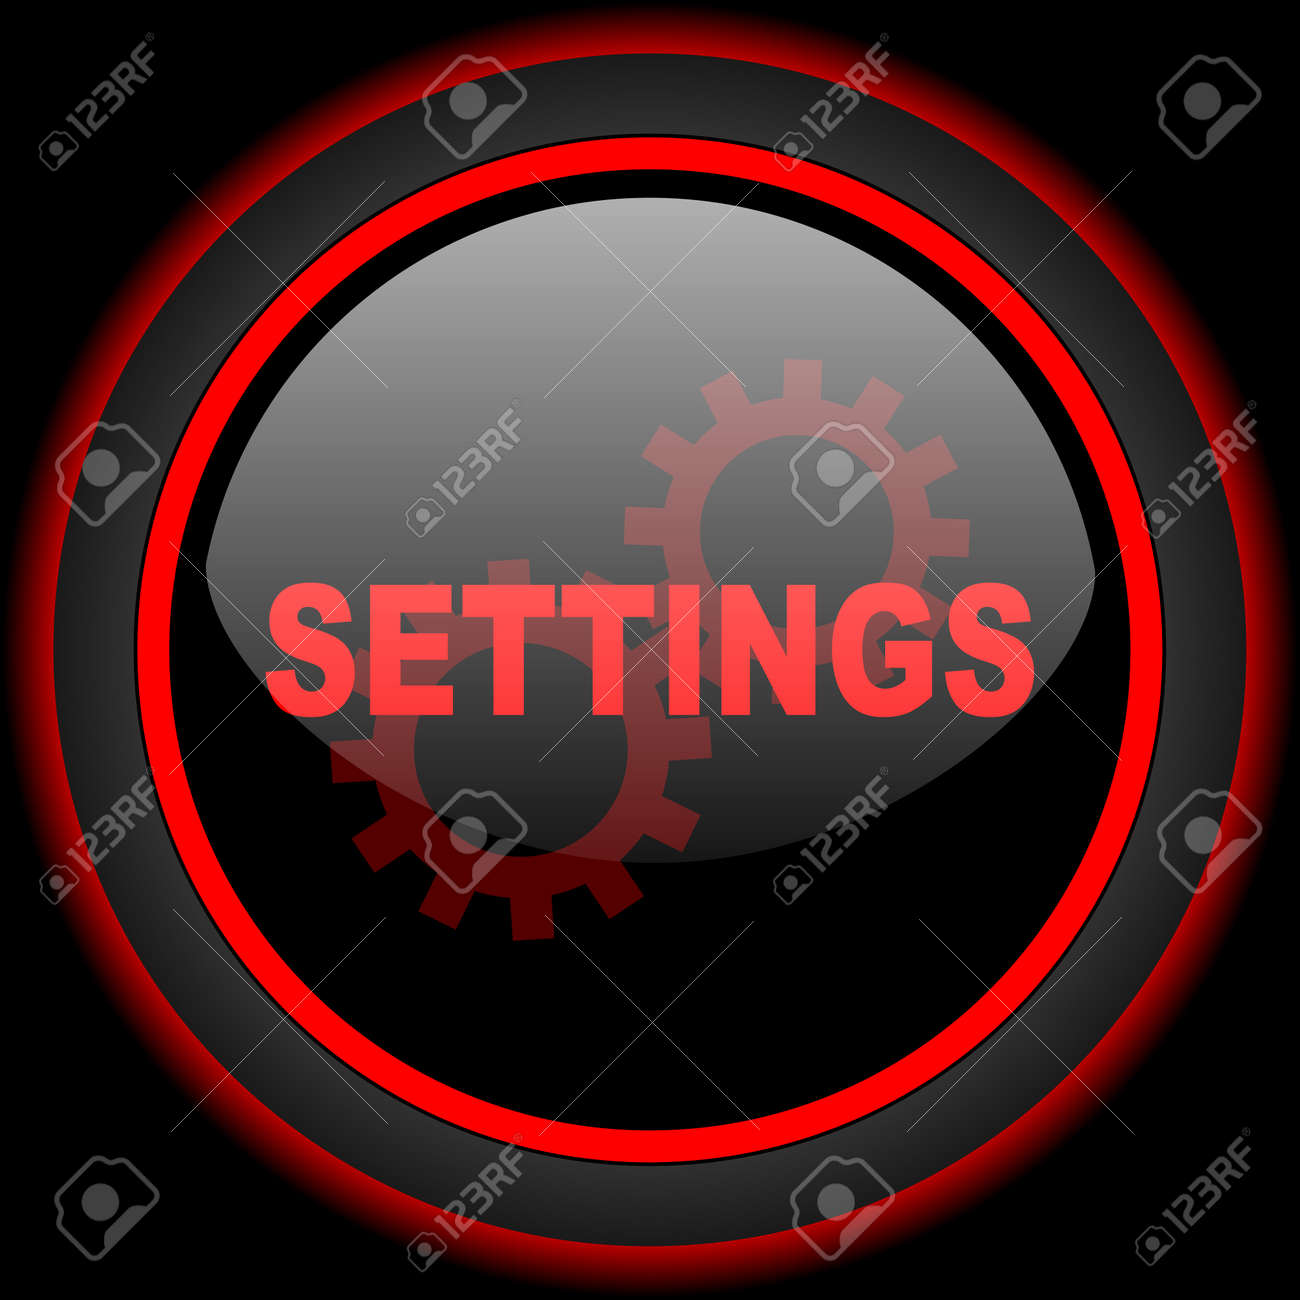 Settings Black And Red Glossy Internet Icon On Black Background Stock Photo Picture And Royalty Free Image Image 53462590